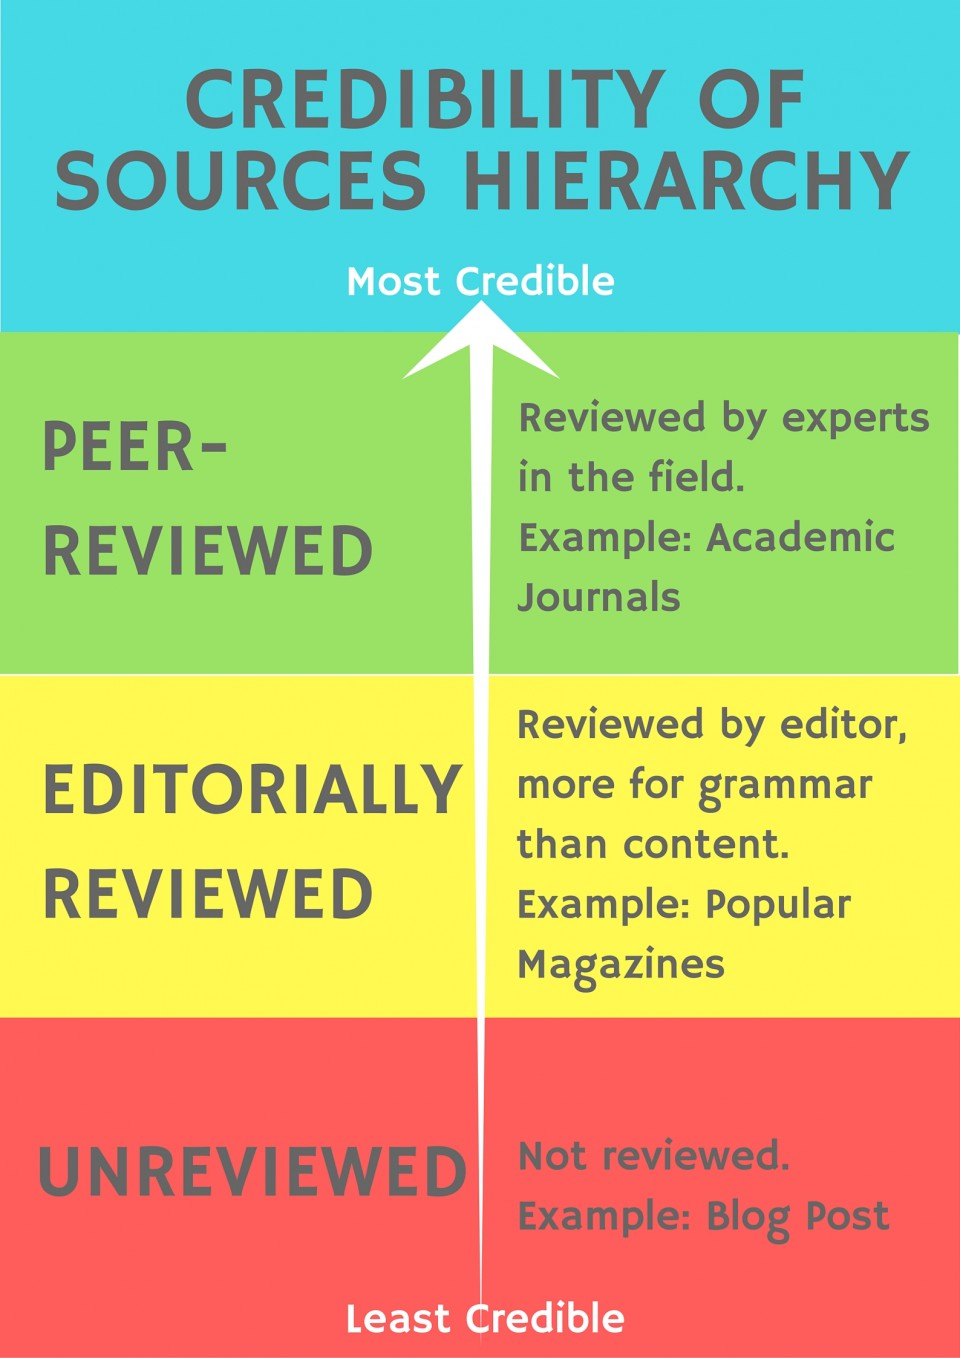 003 Final Credibility Of Sources Hierarchy Credible Websites For Researchs Best Research Papers 960